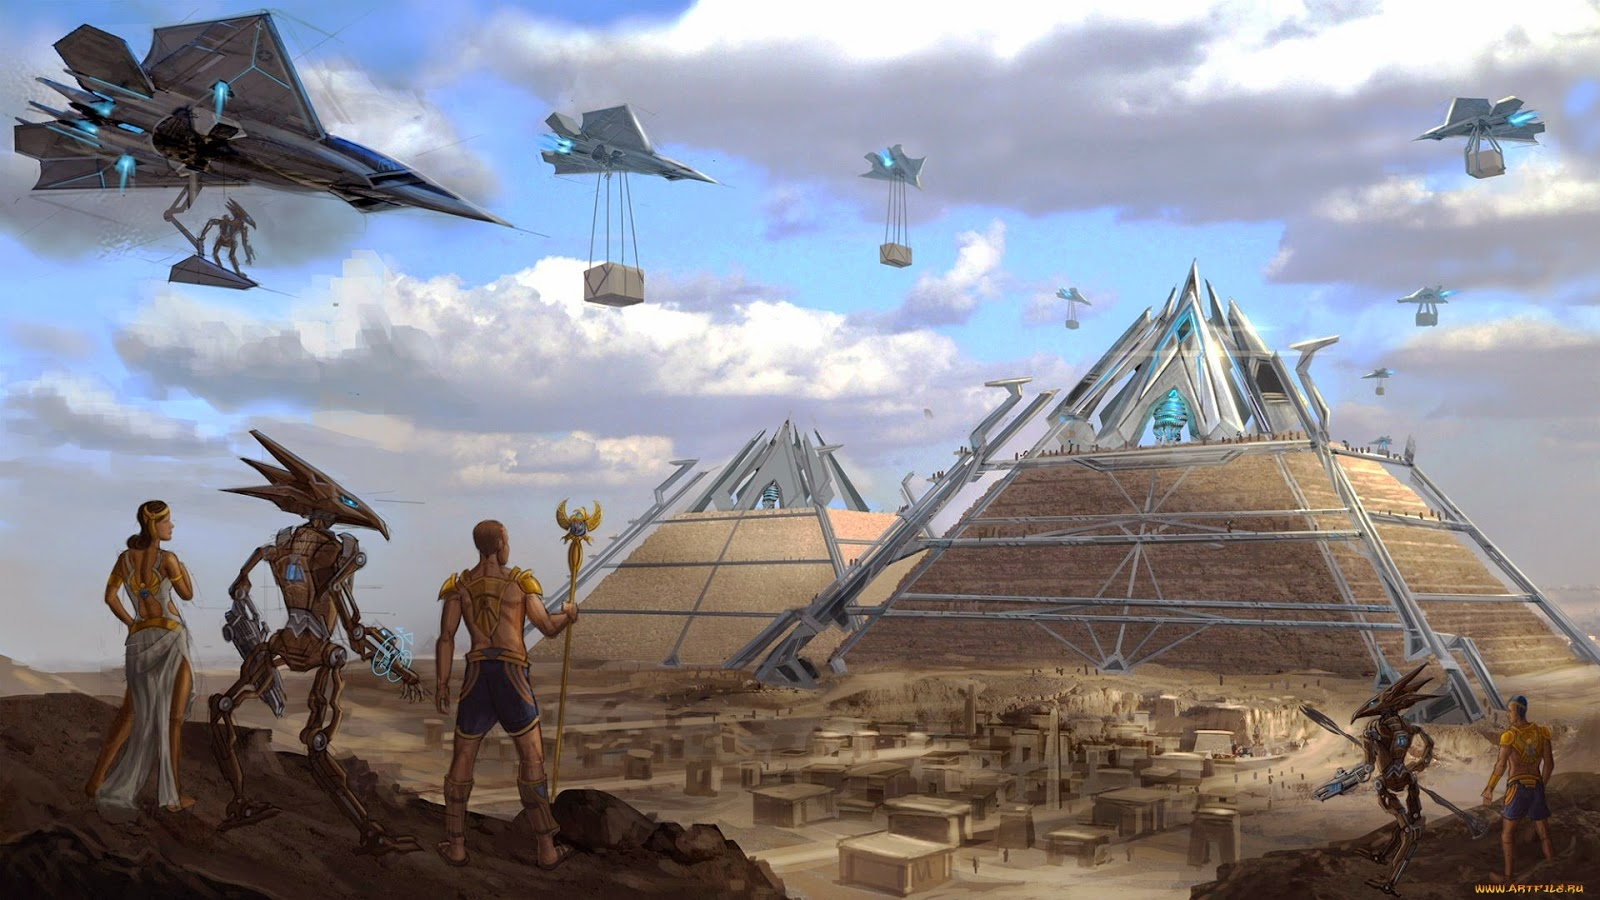 alien-builders-supervising-egyptian-giza-pyramid-construction.png